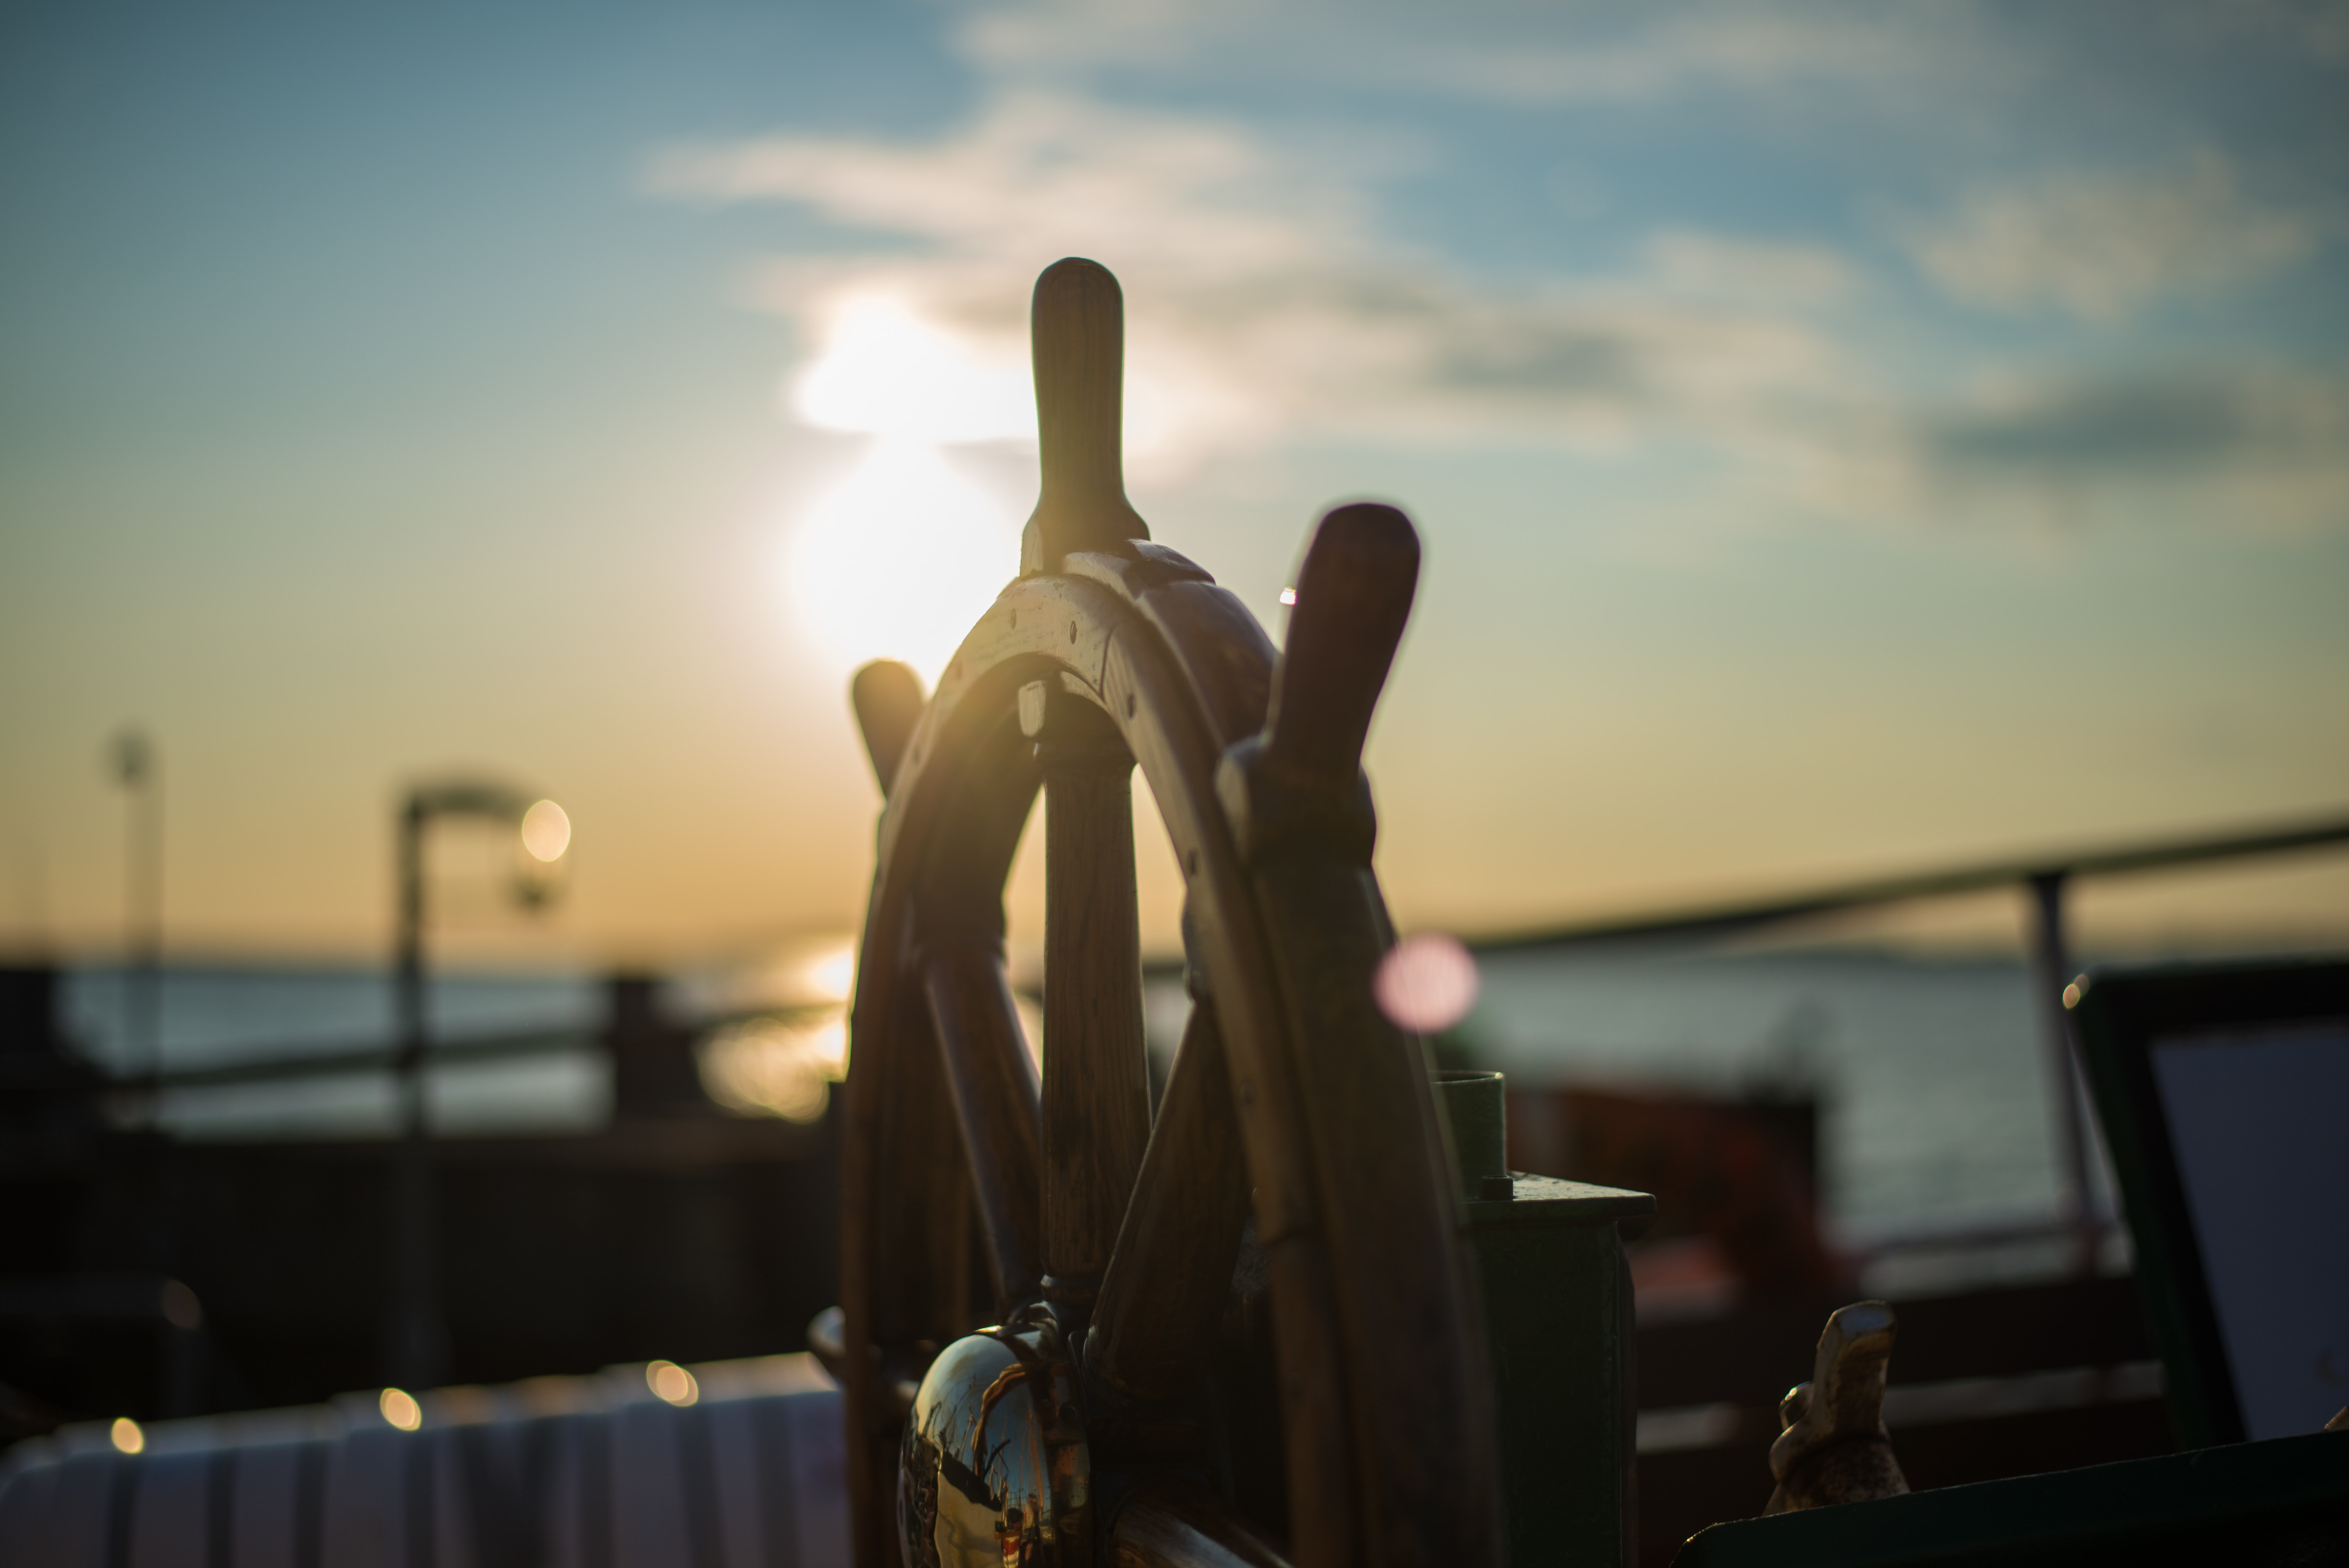 A ship's wheel is seen in Faaborg during sunset.